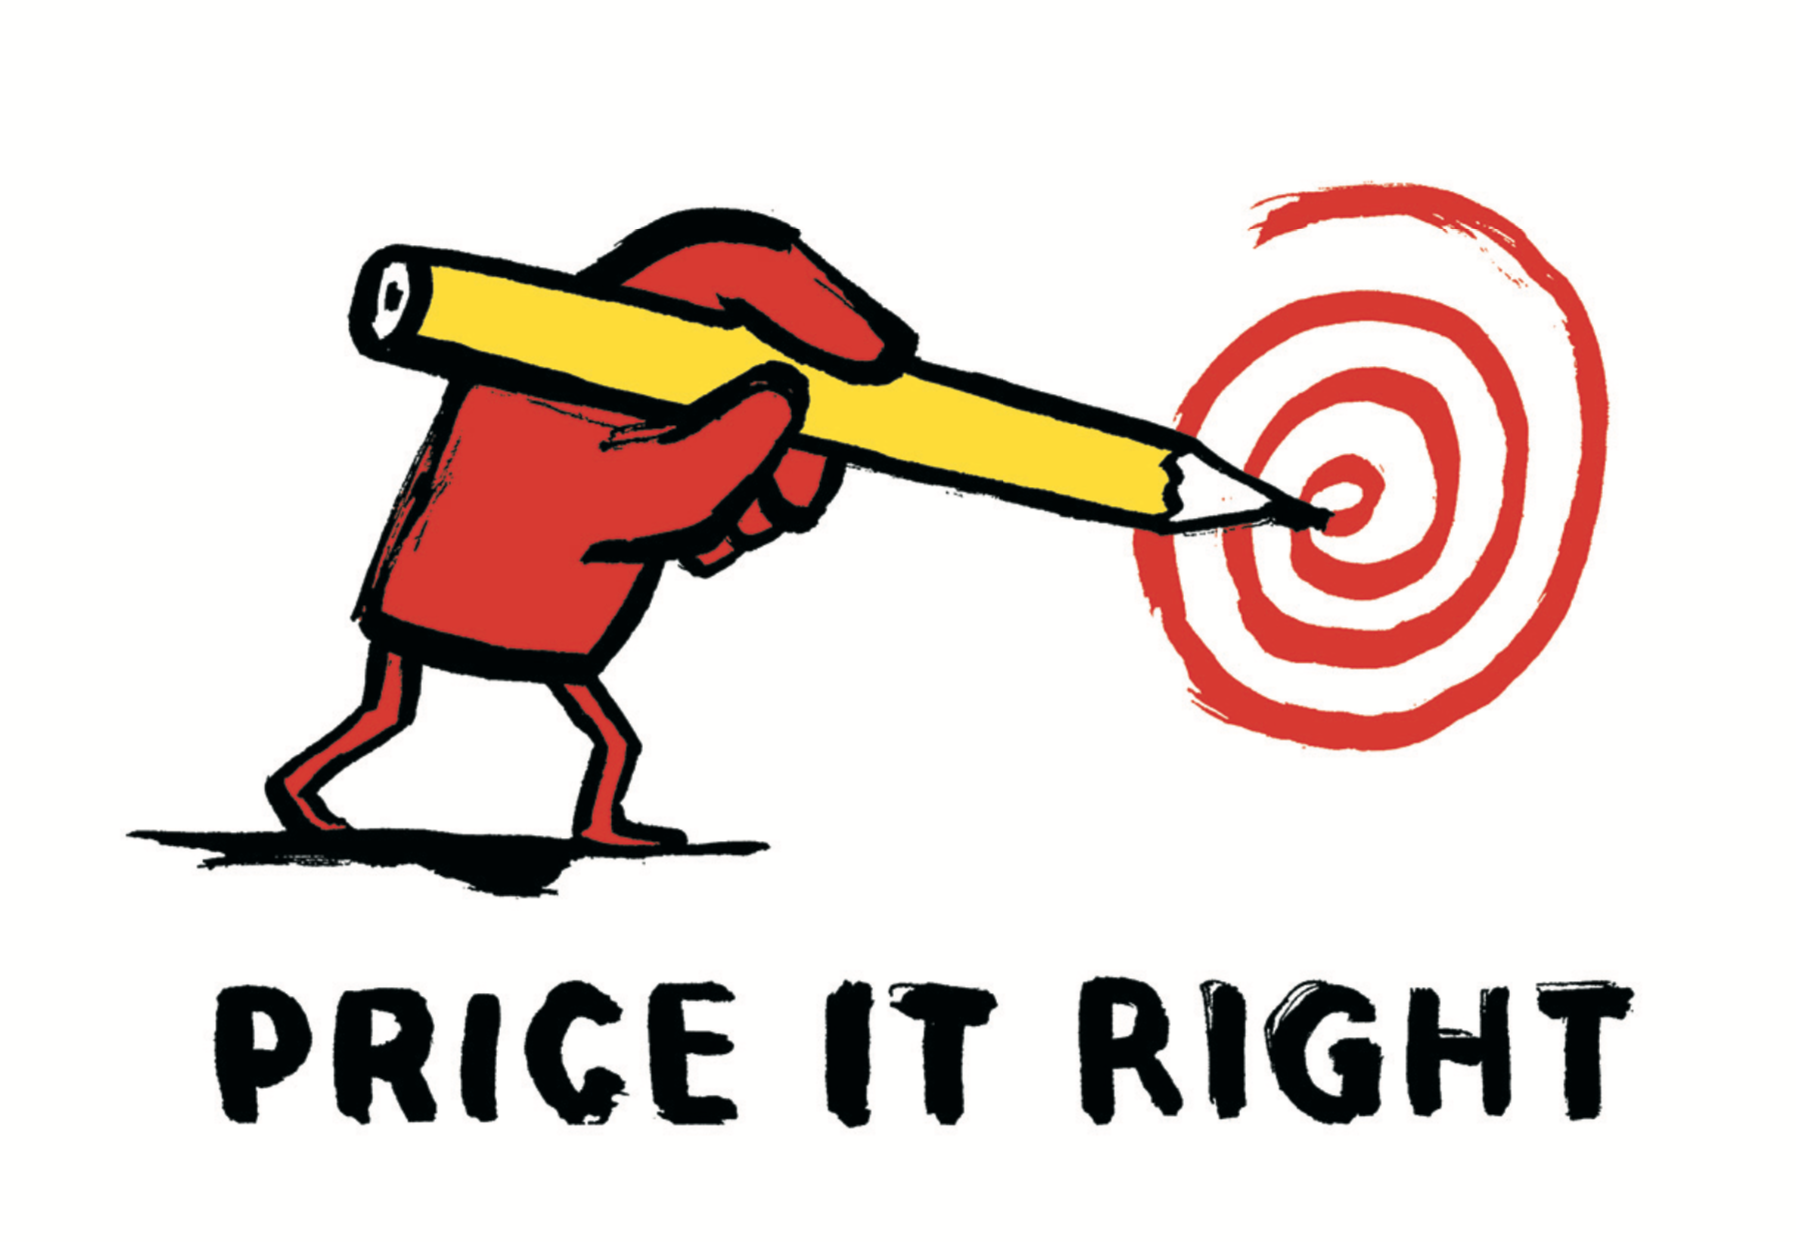 A member of the  Price It Right  illustration movement.